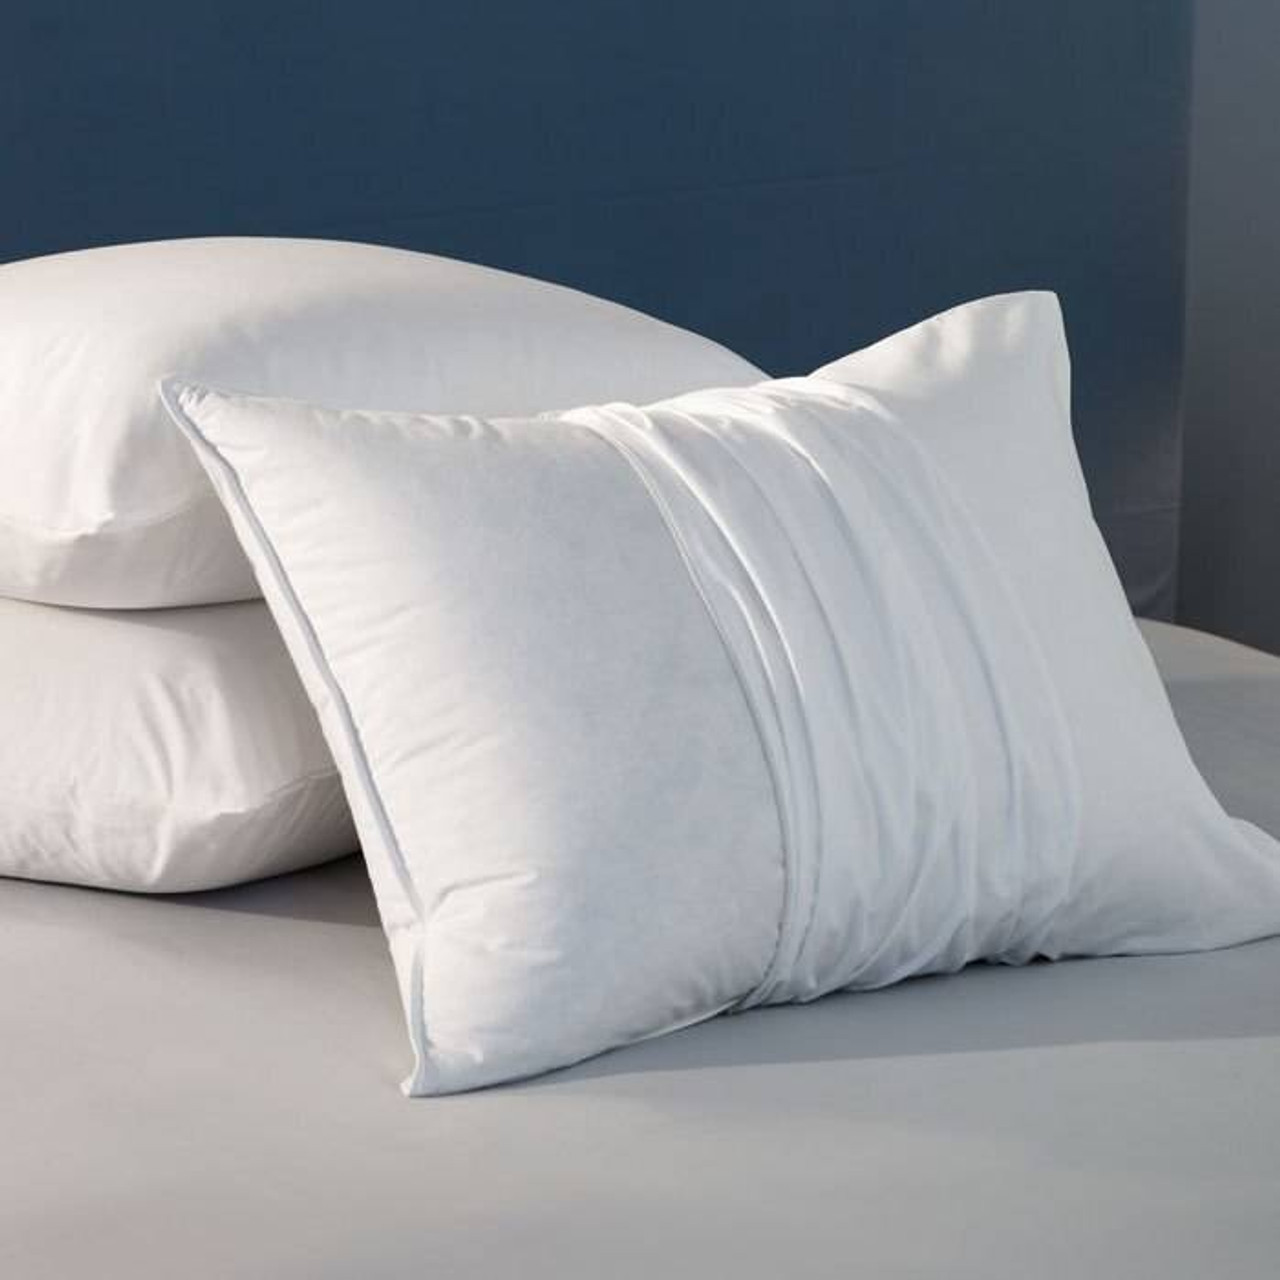 Restful Nights Restful Nights Pillows T-180 Zippered Pillow Protectors